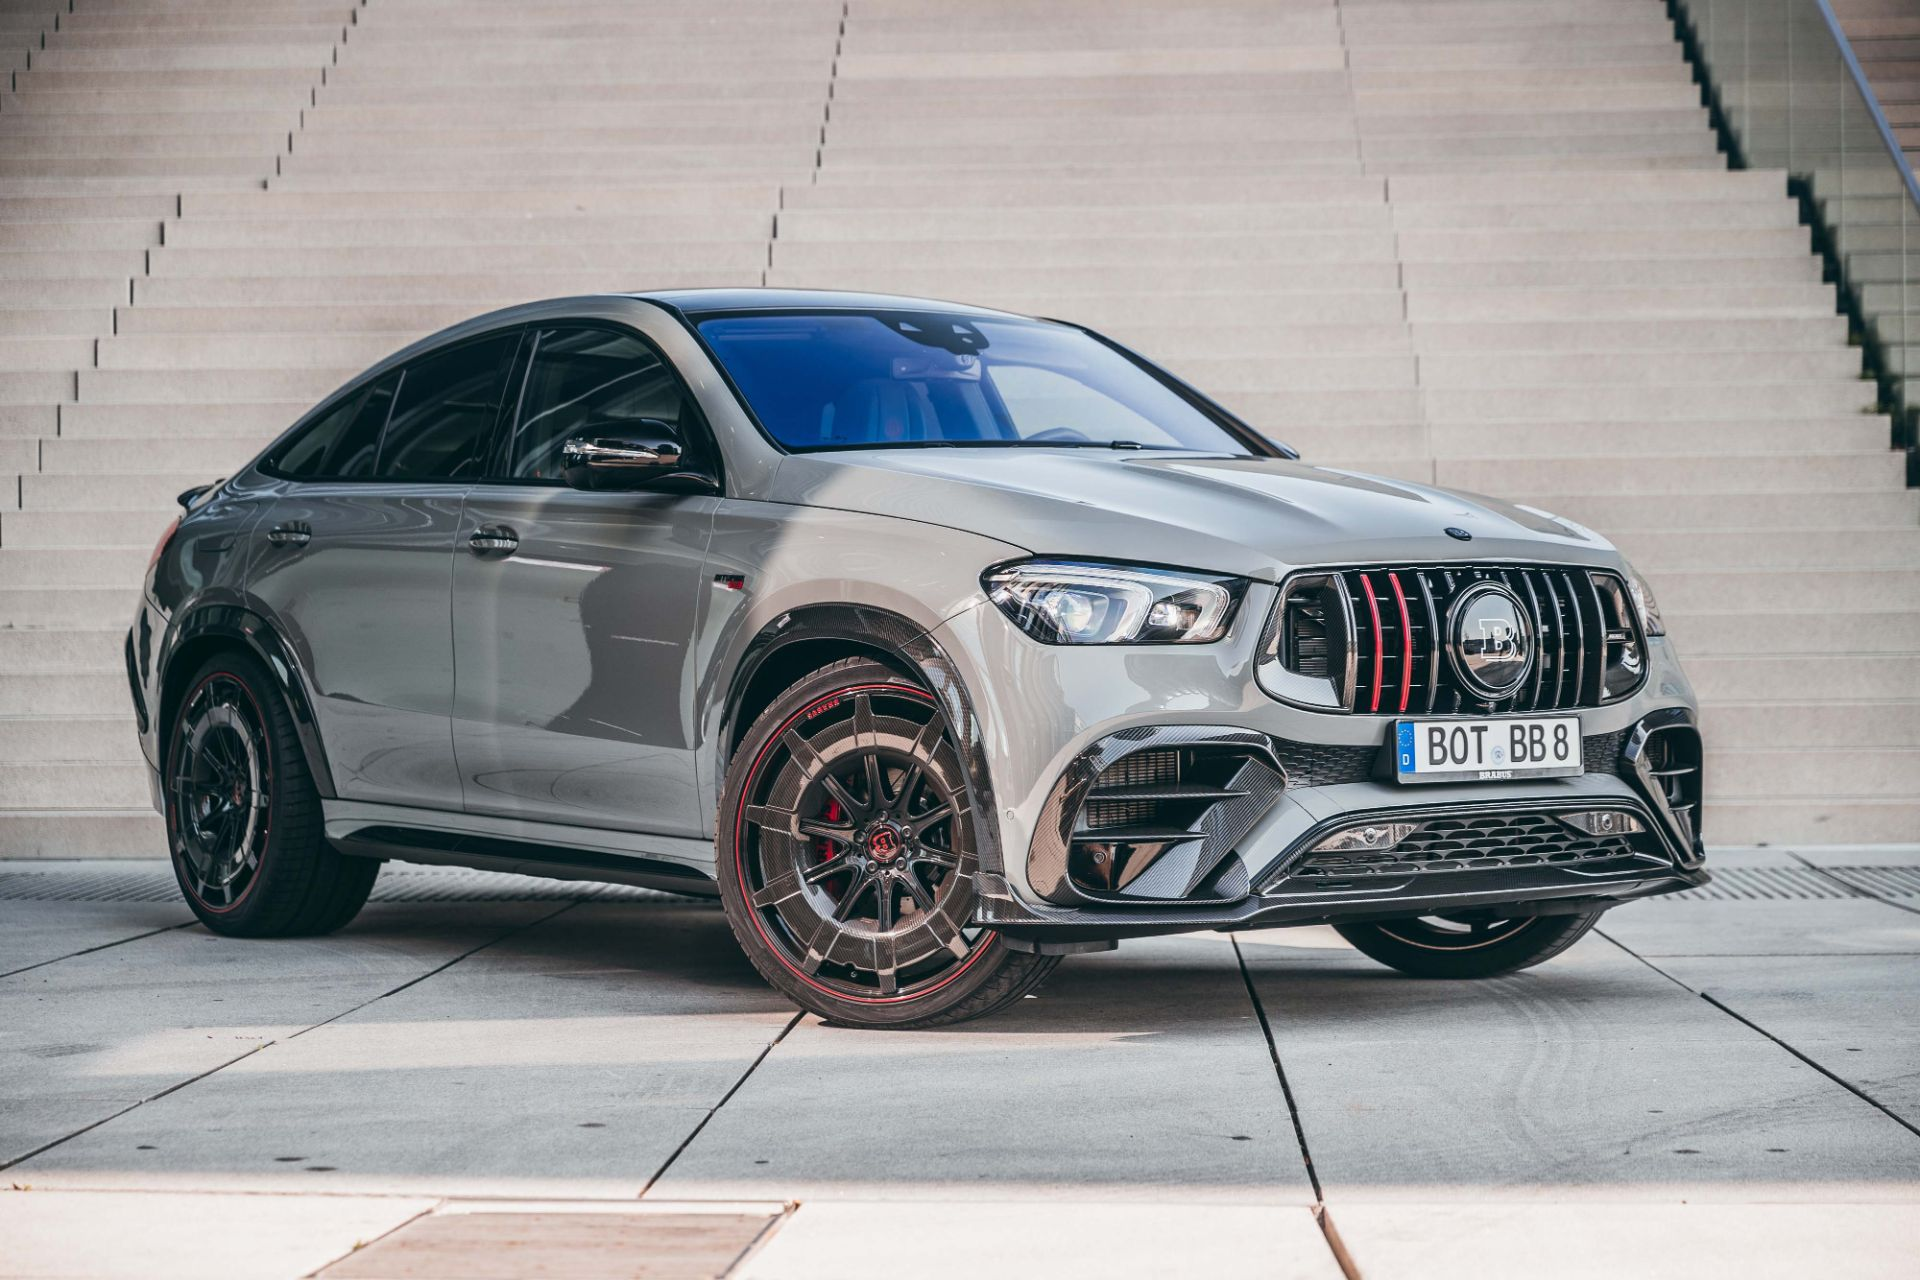 At the Monaco Yacht Show earlier this year, tuner Brabus has unveiled a downright hardcore take on the Mercedes-AMG GLE 63 S 4MATIC+, and has now followed up with full specifications and pricing.